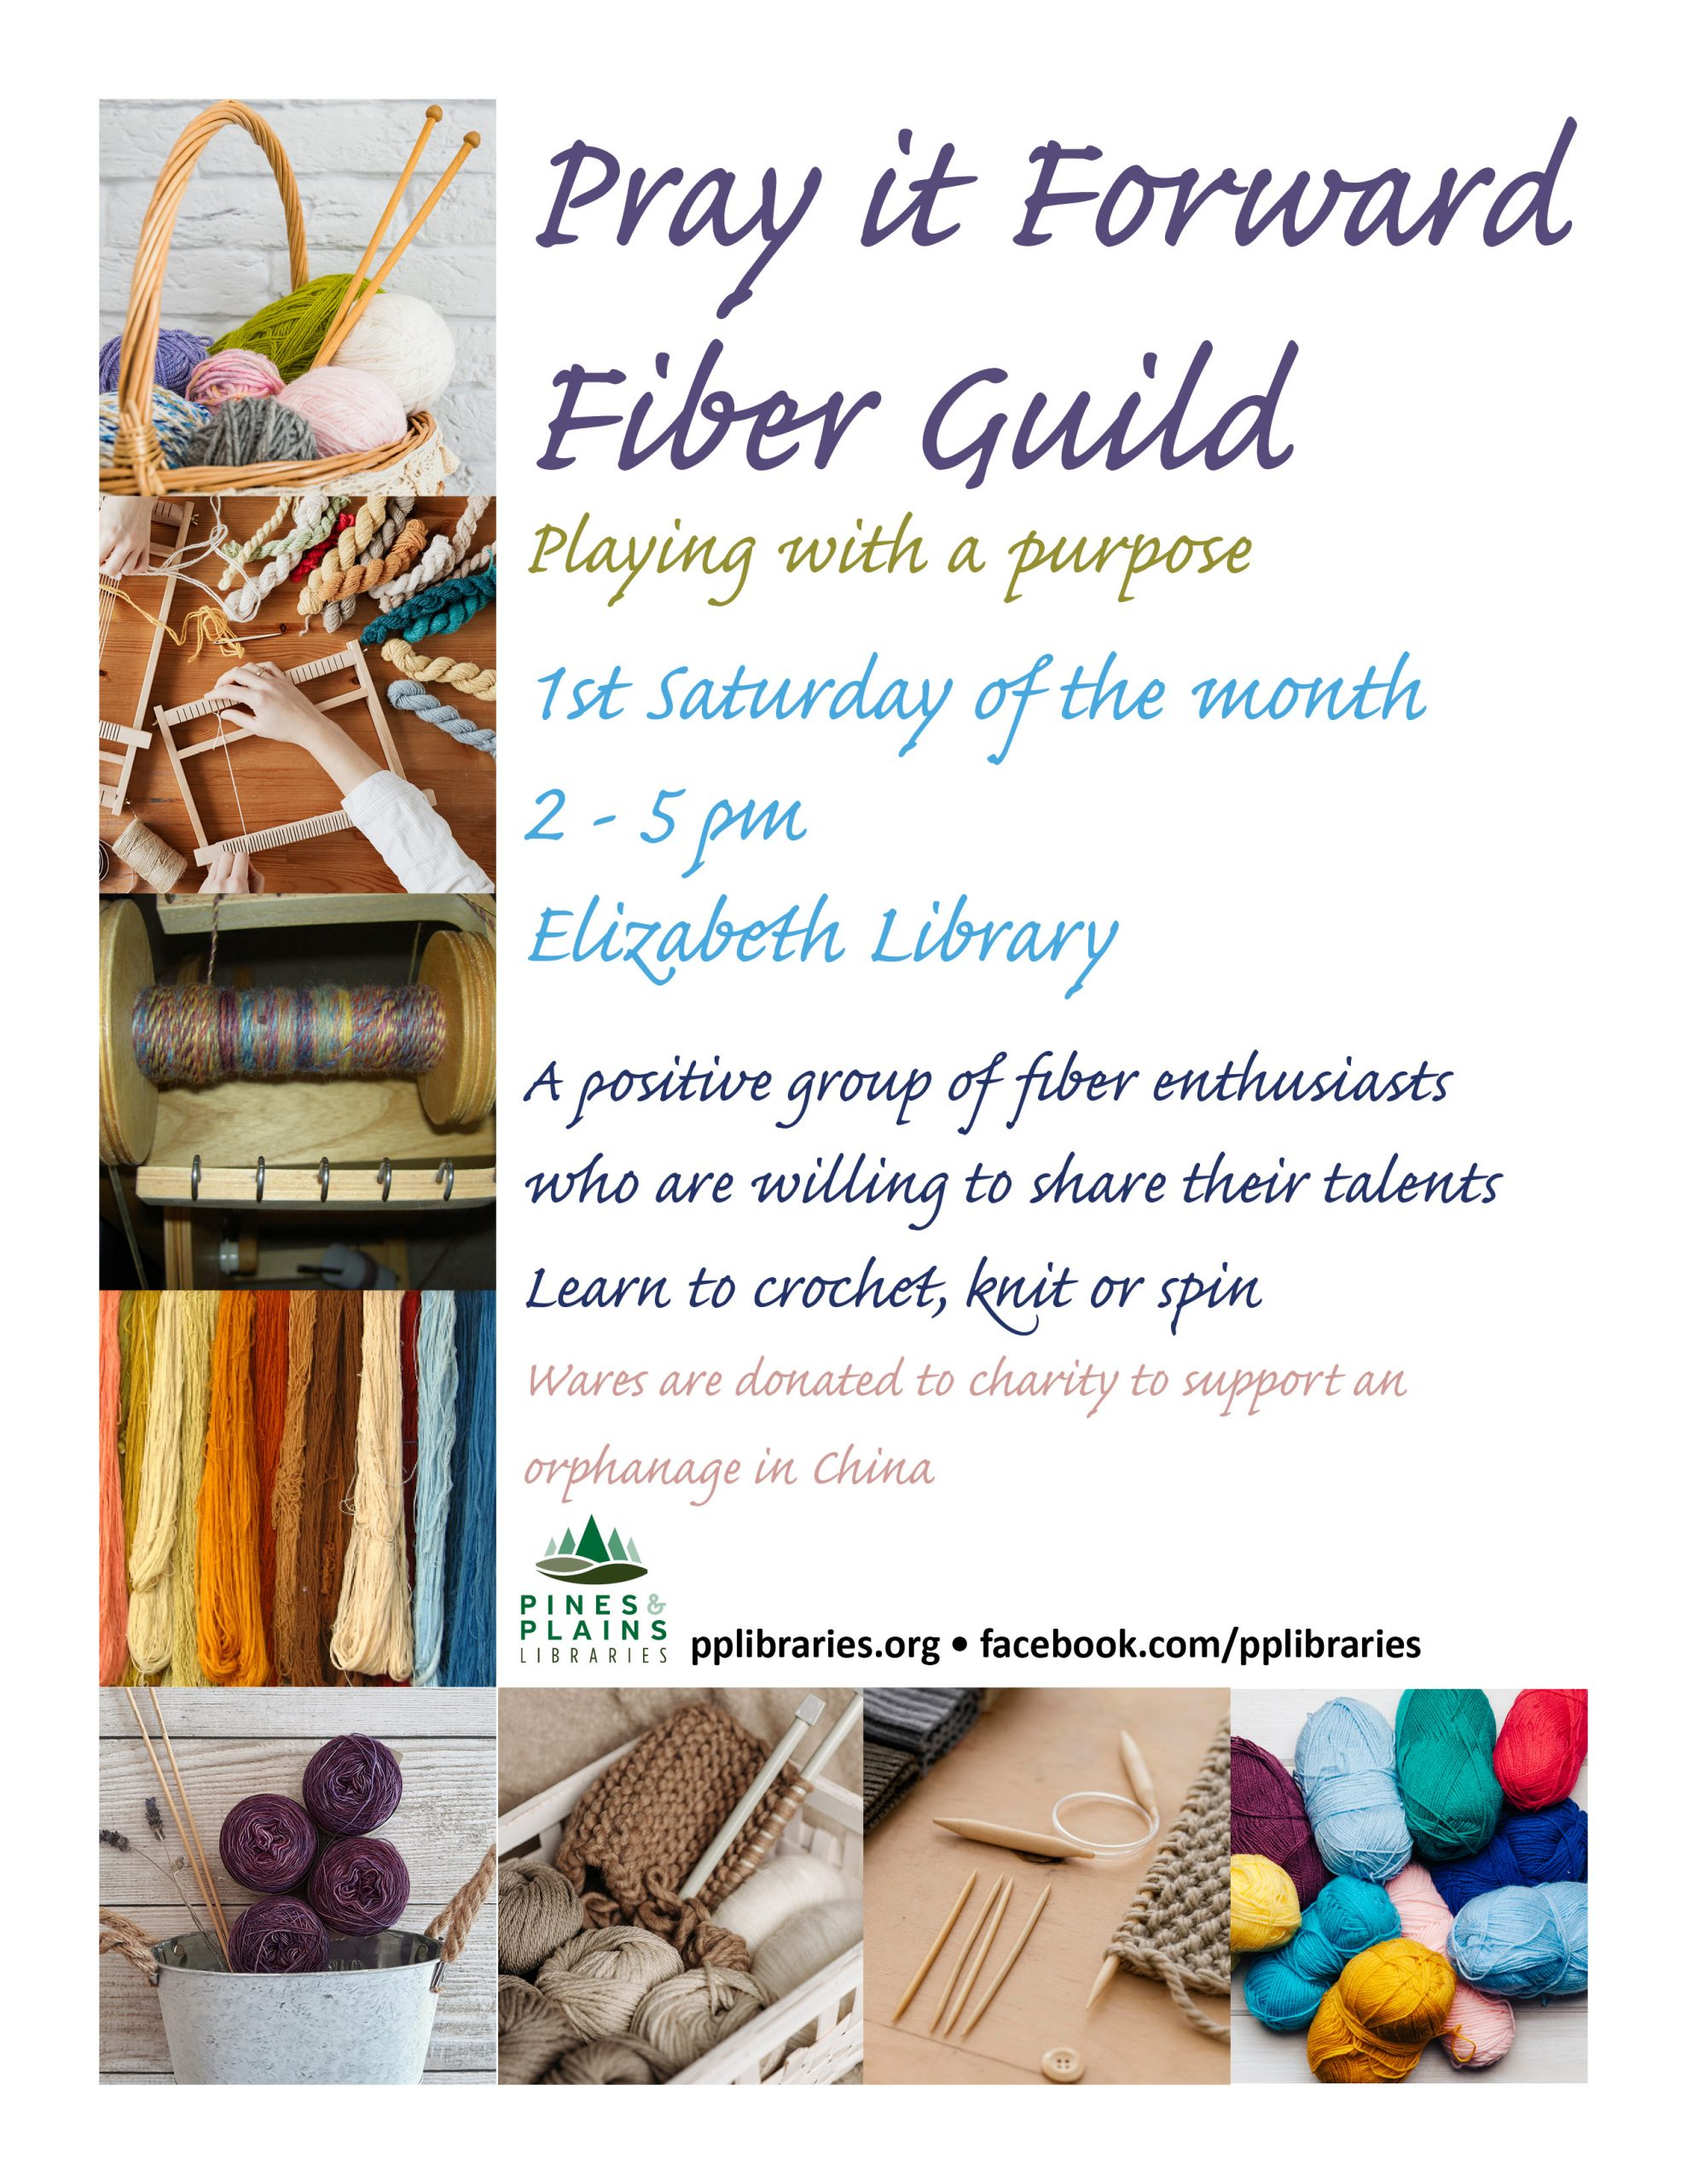 Pray it Forward Fiber Guild flyer with yarn and fiber craft images